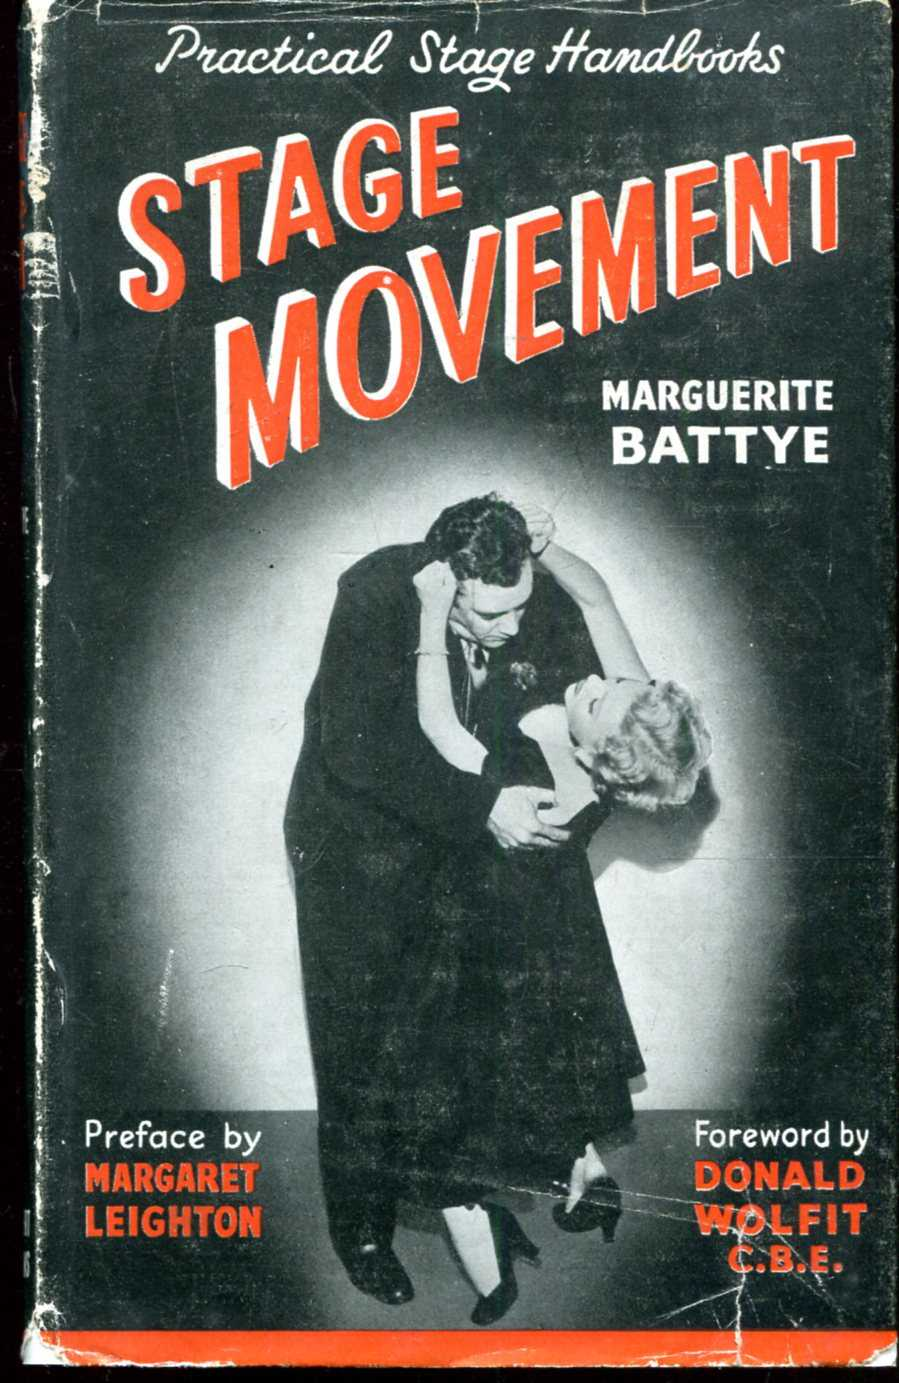 Image for Stage Movement (Practical Stage Handbooks)